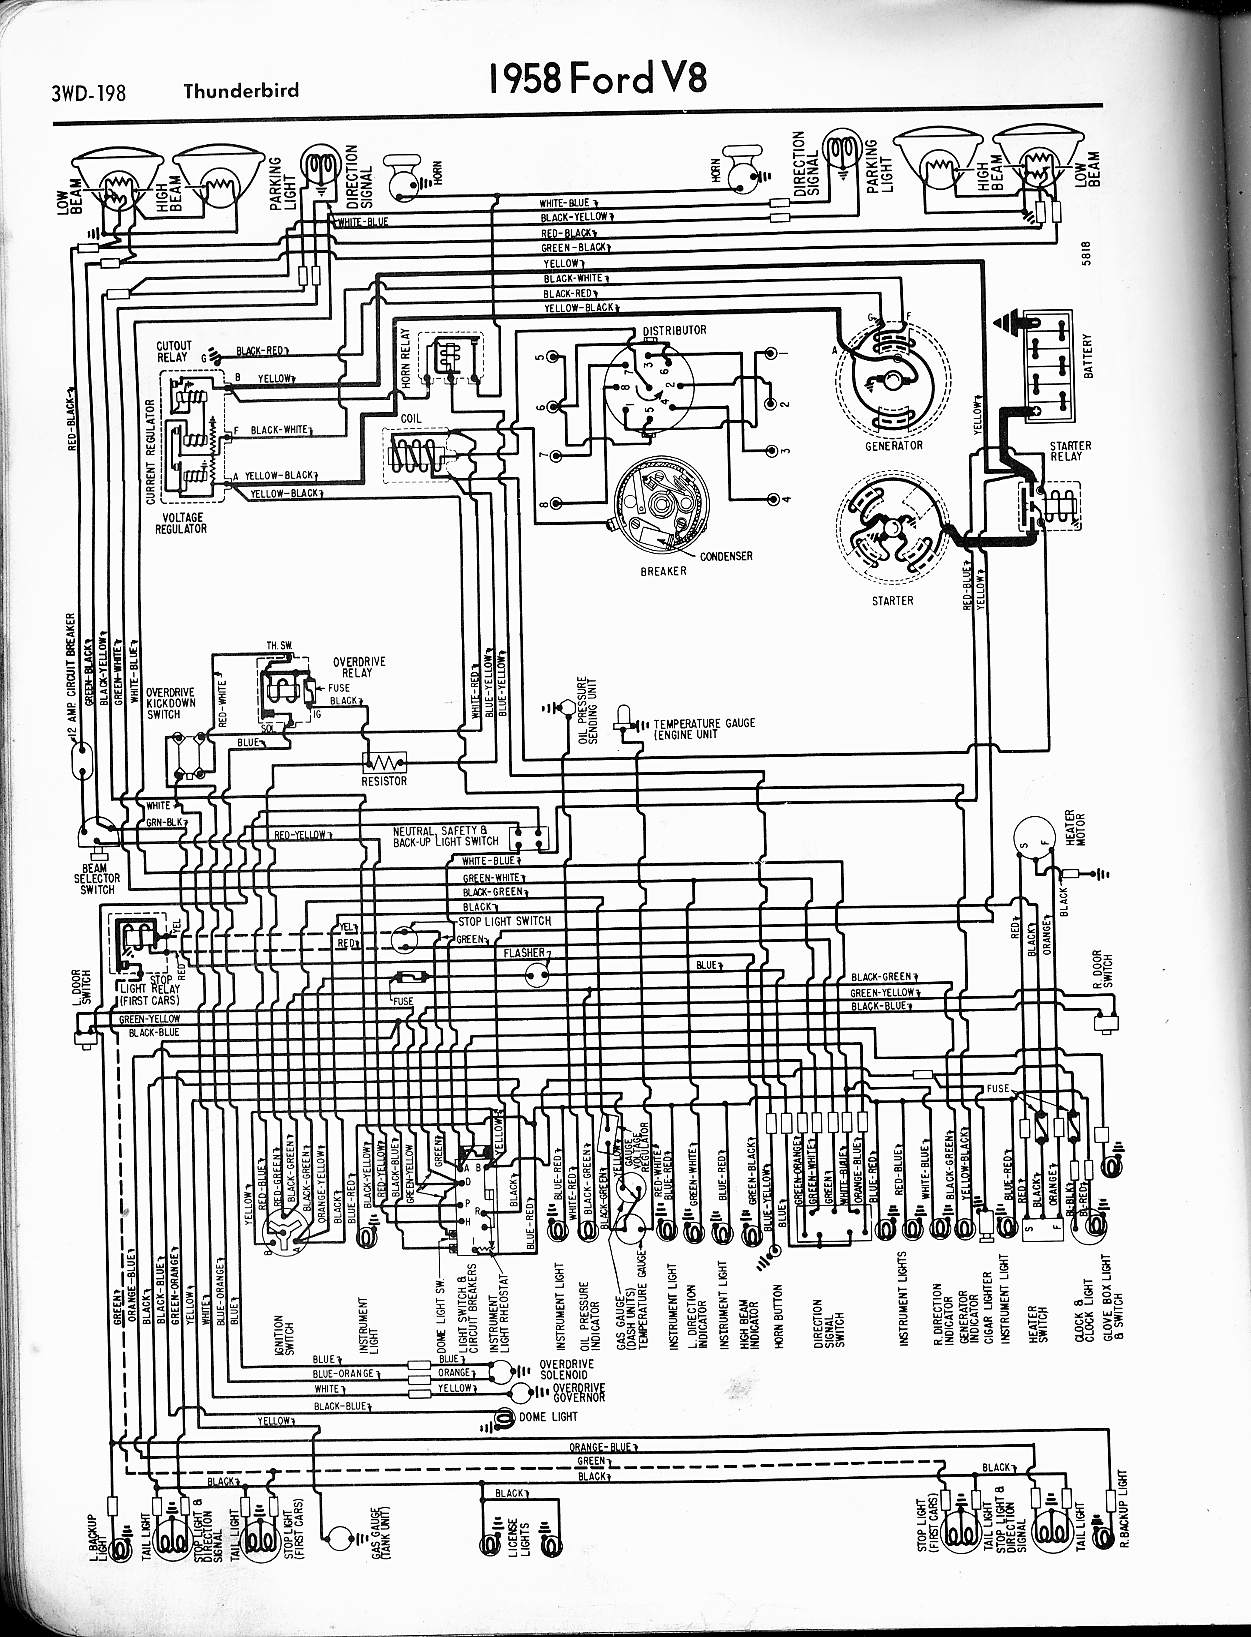 1967 Corvette Power Window Wiring Diagram Schematics Diagrams 1966 Barracuda Dash Schematic 1958 Ford Rh Mychampagnedaze Com Chevy